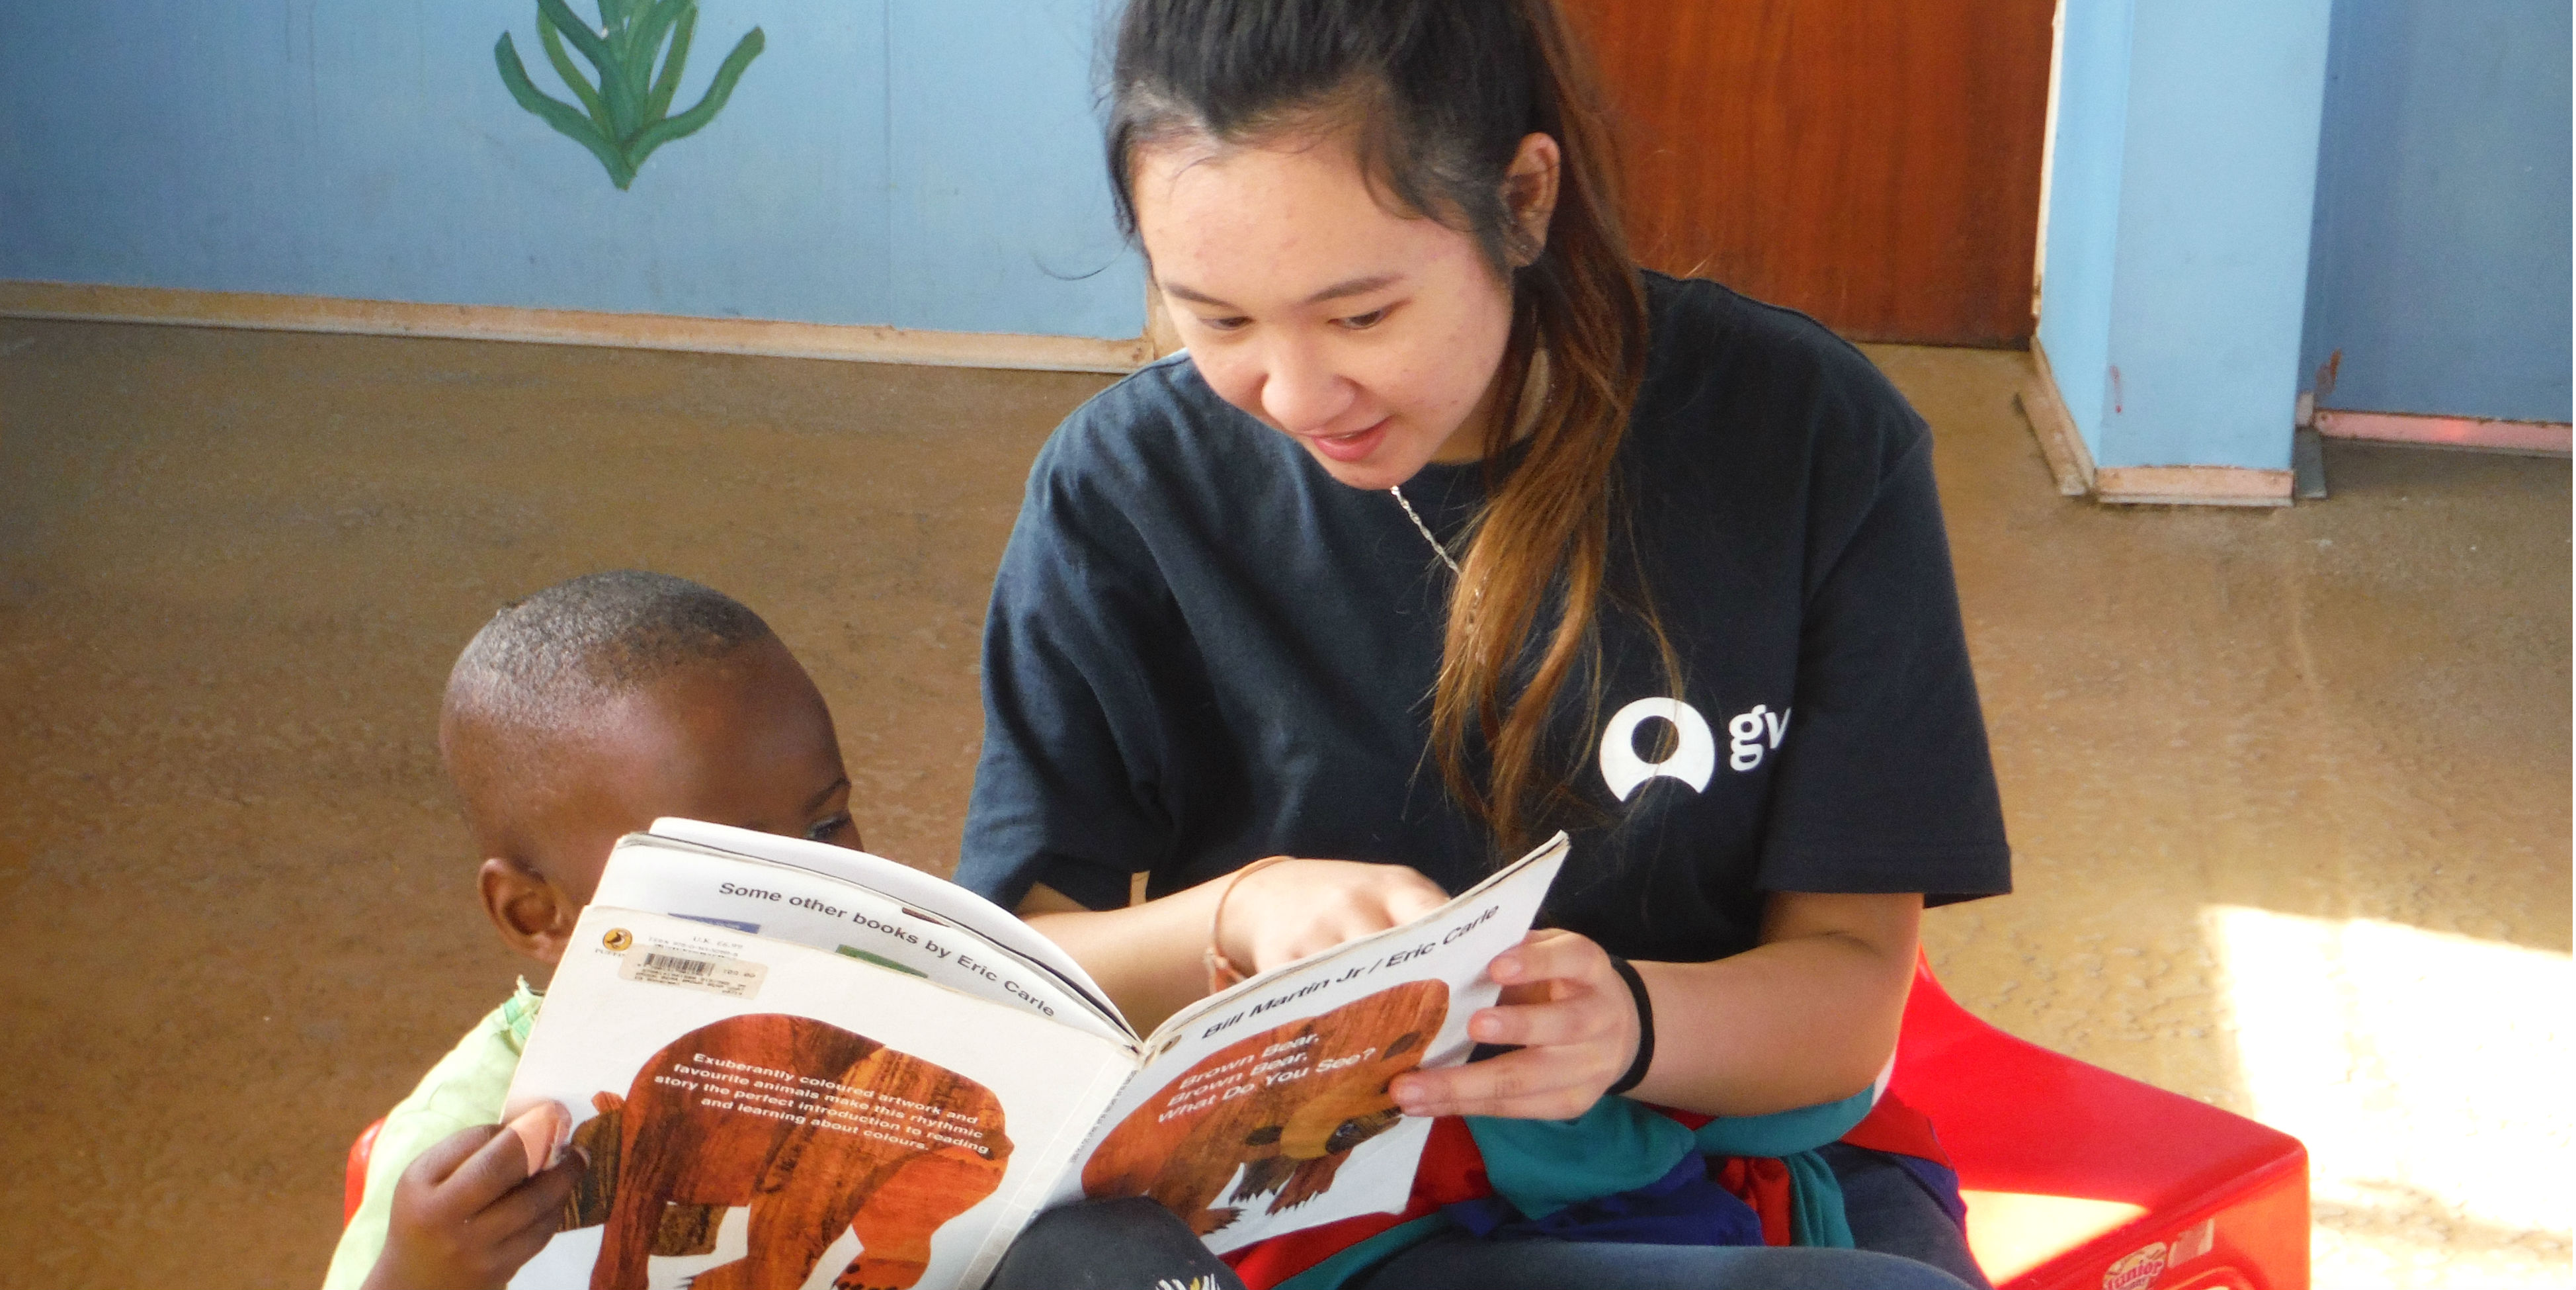 A GVI participant leads a learner through their reading while volunteering in Cape Town.